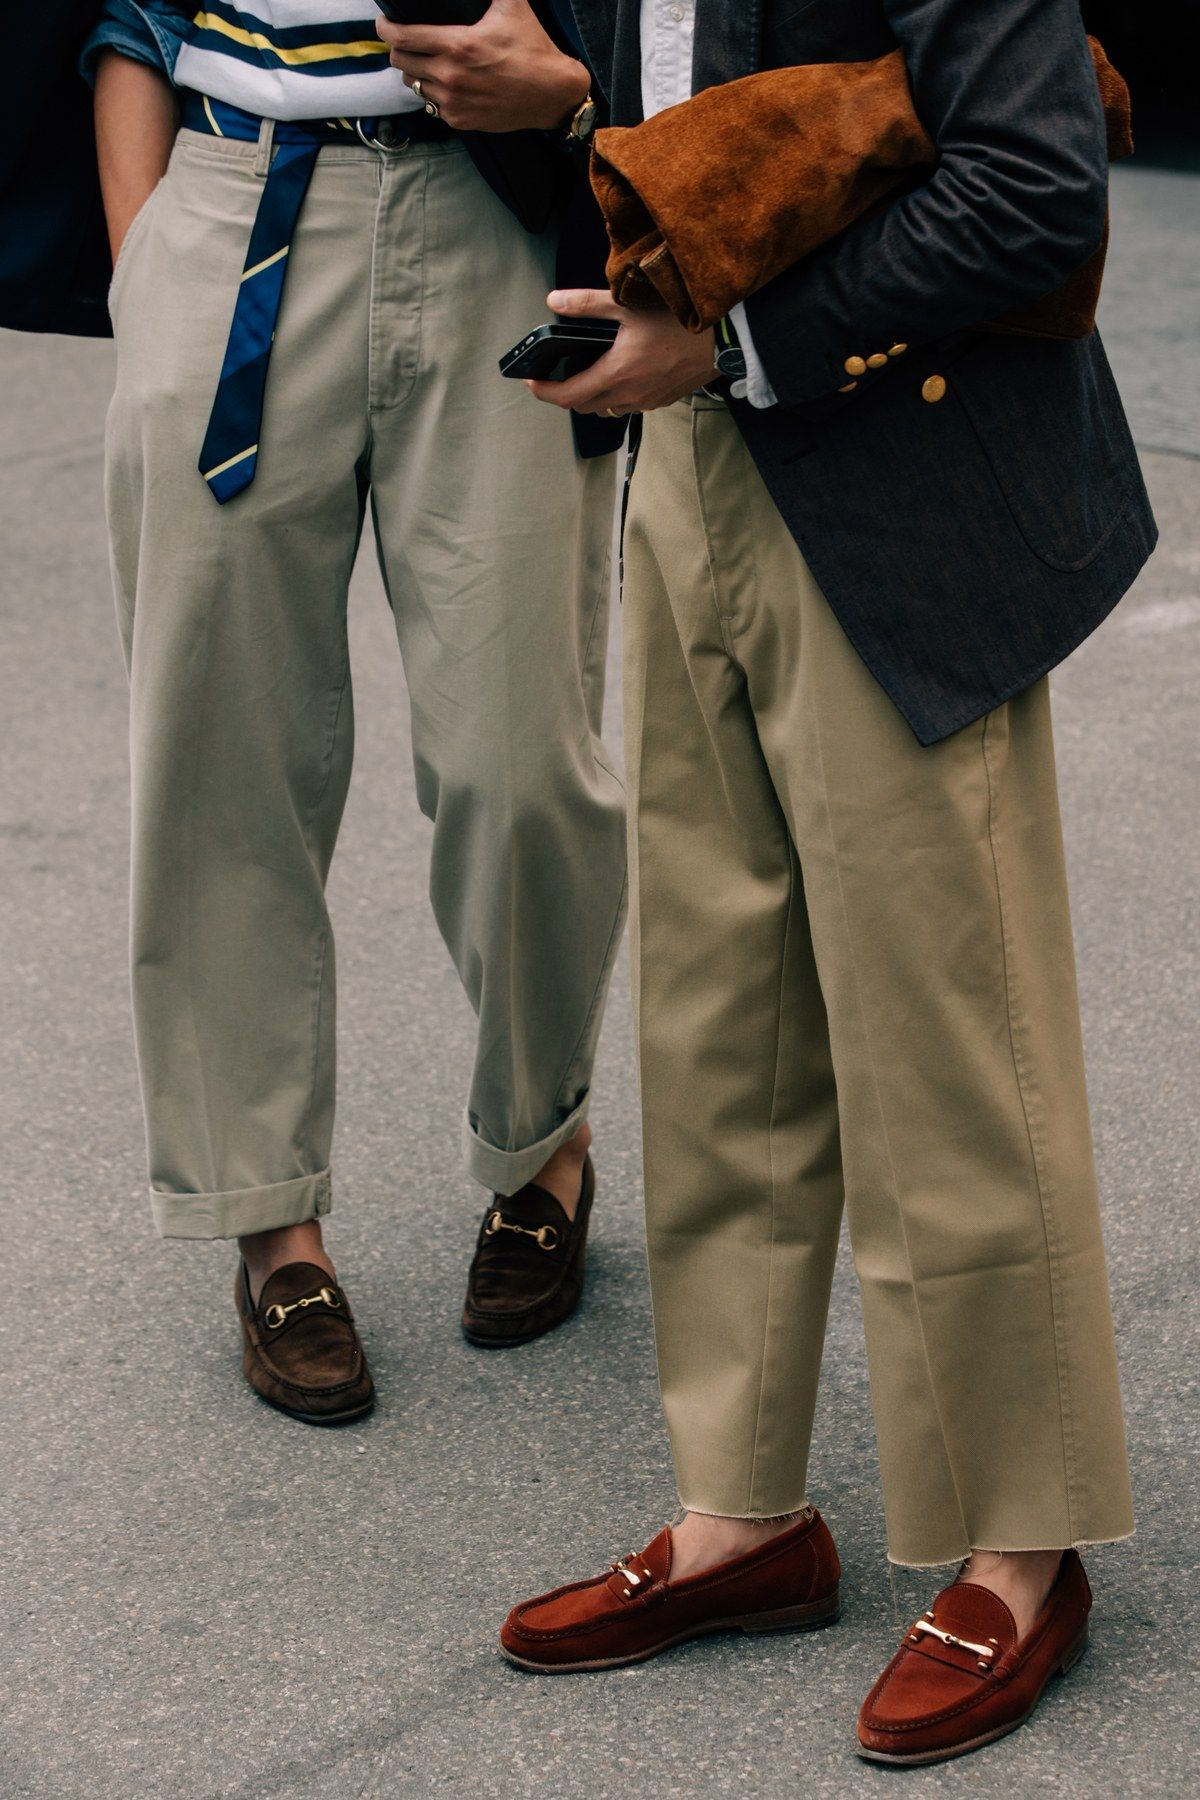 390a45f1d2a92 The Best Street Style from Pitti Uomo | 6.1 | Fashion, Cool street ...